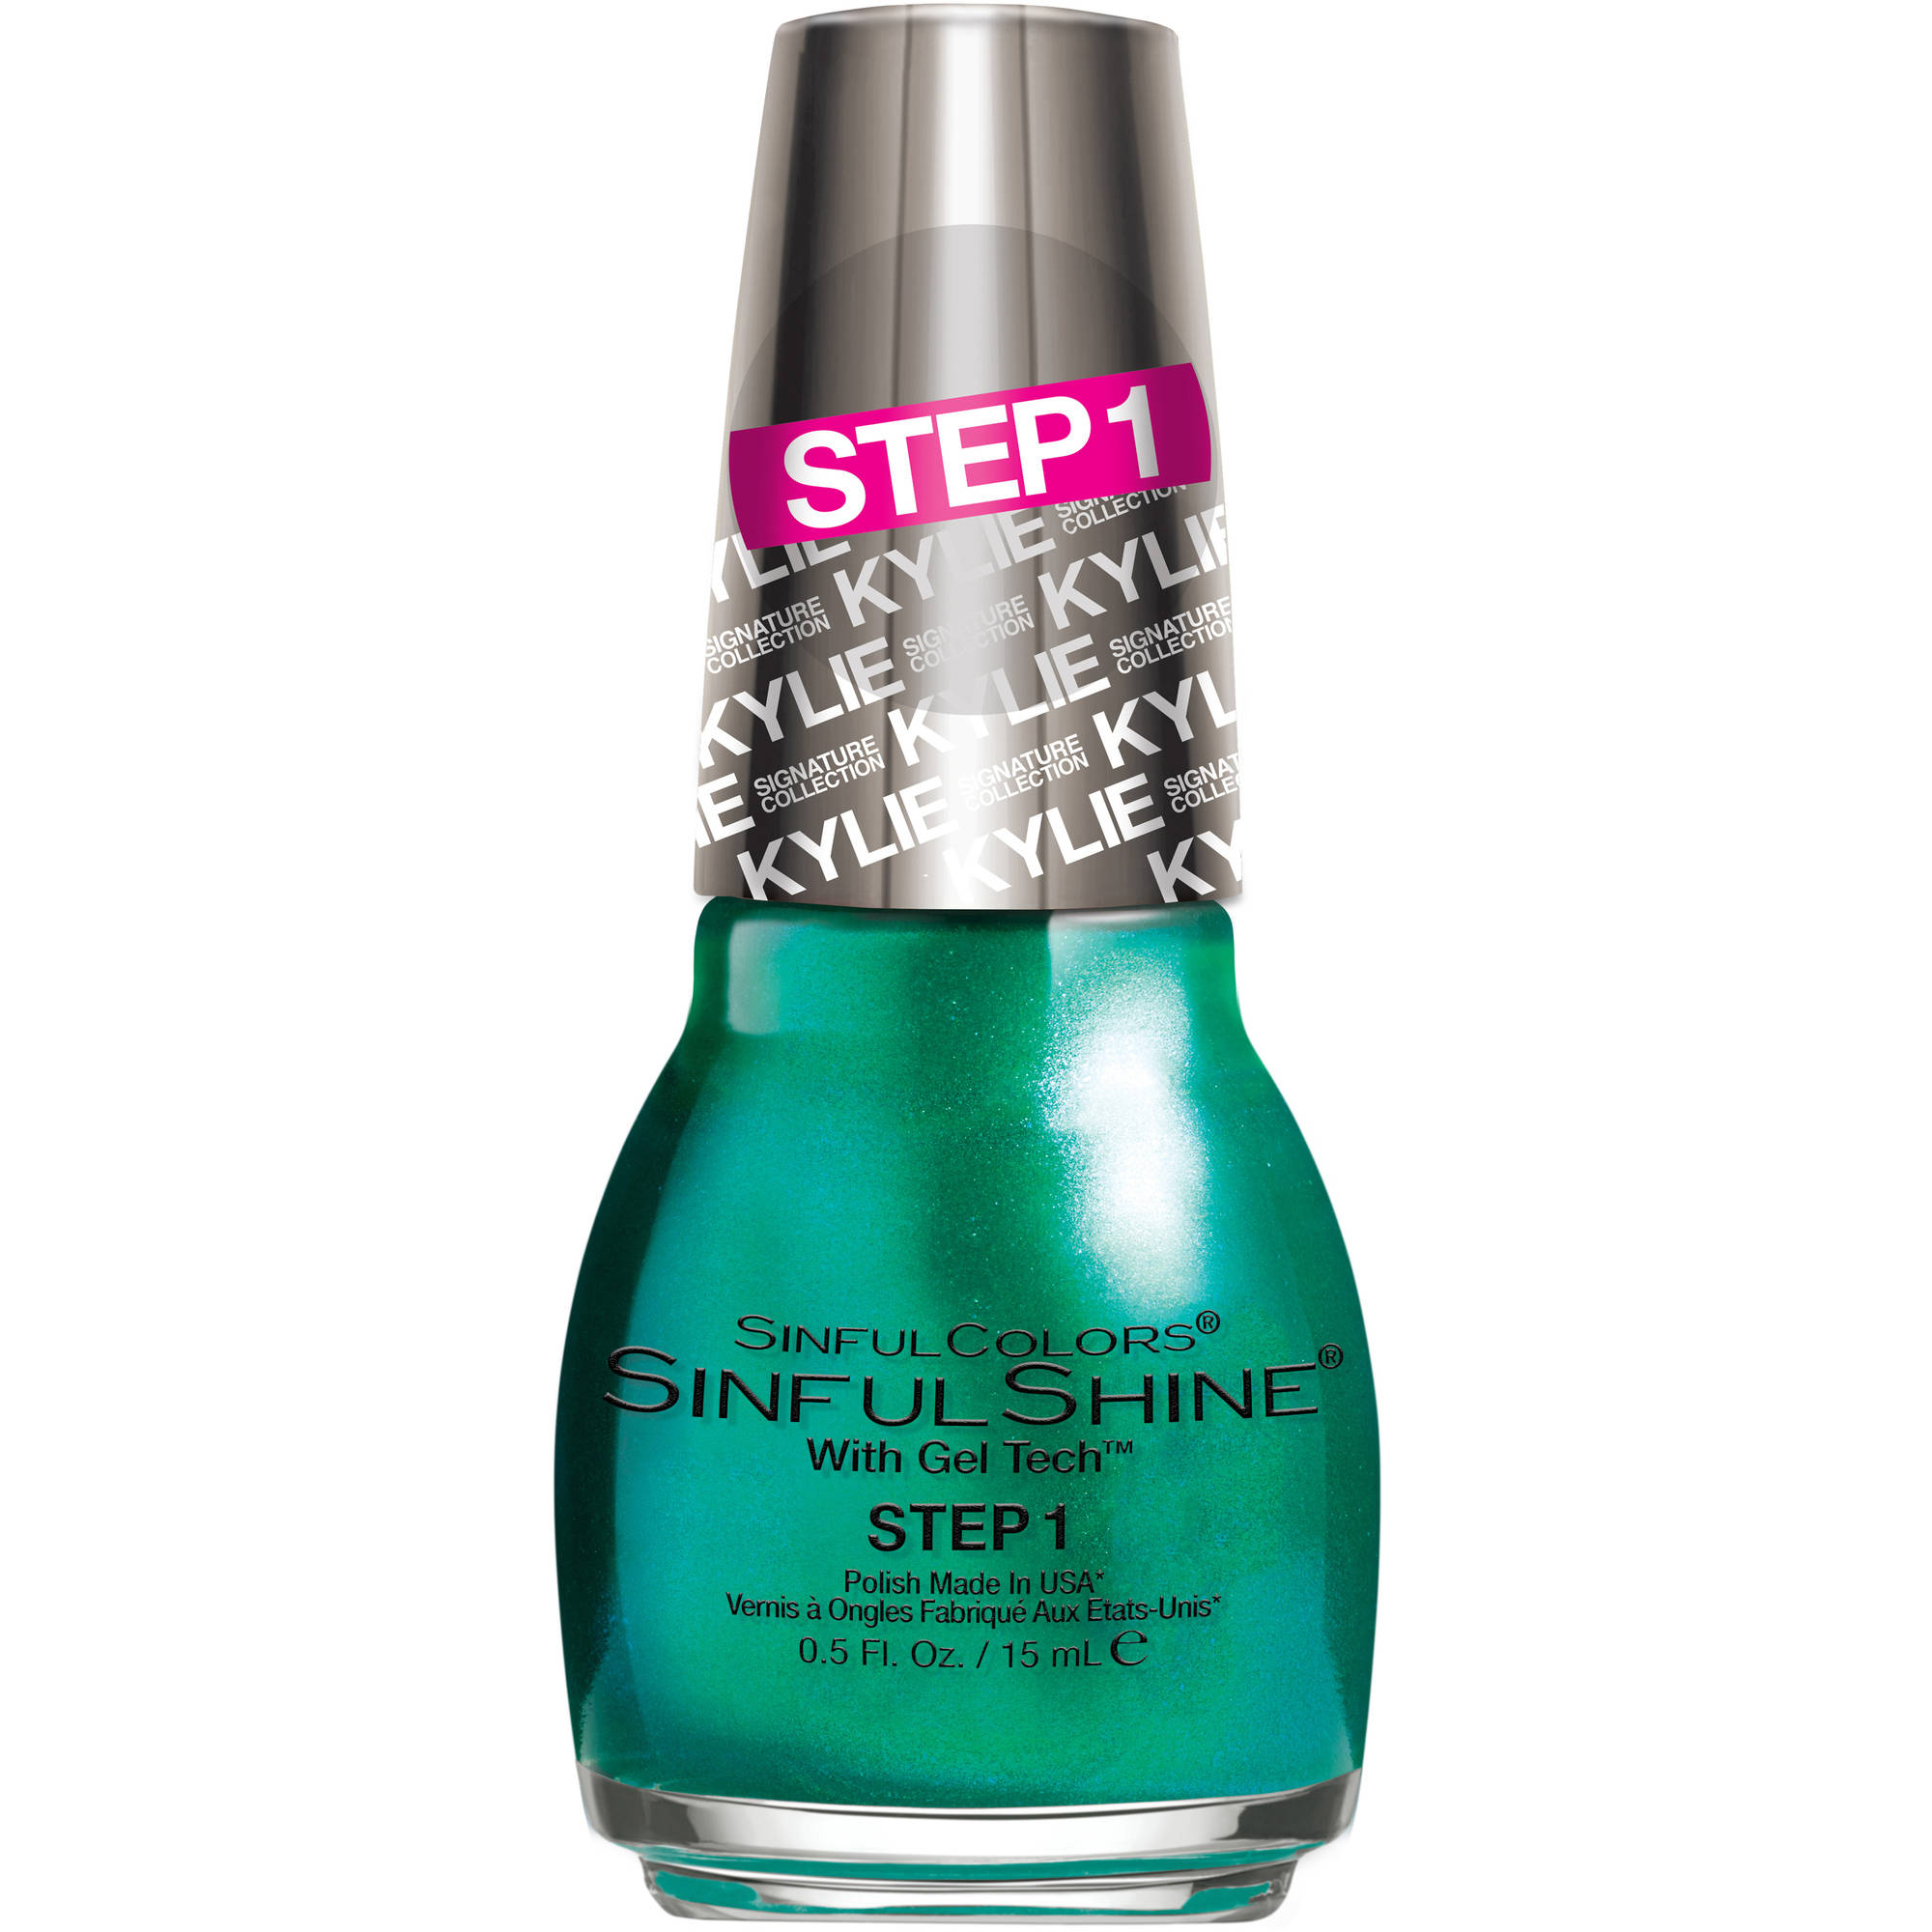 SinfulColors SinfulShine King Kylie Step 1 Nail Polish, 0.5 fl oz